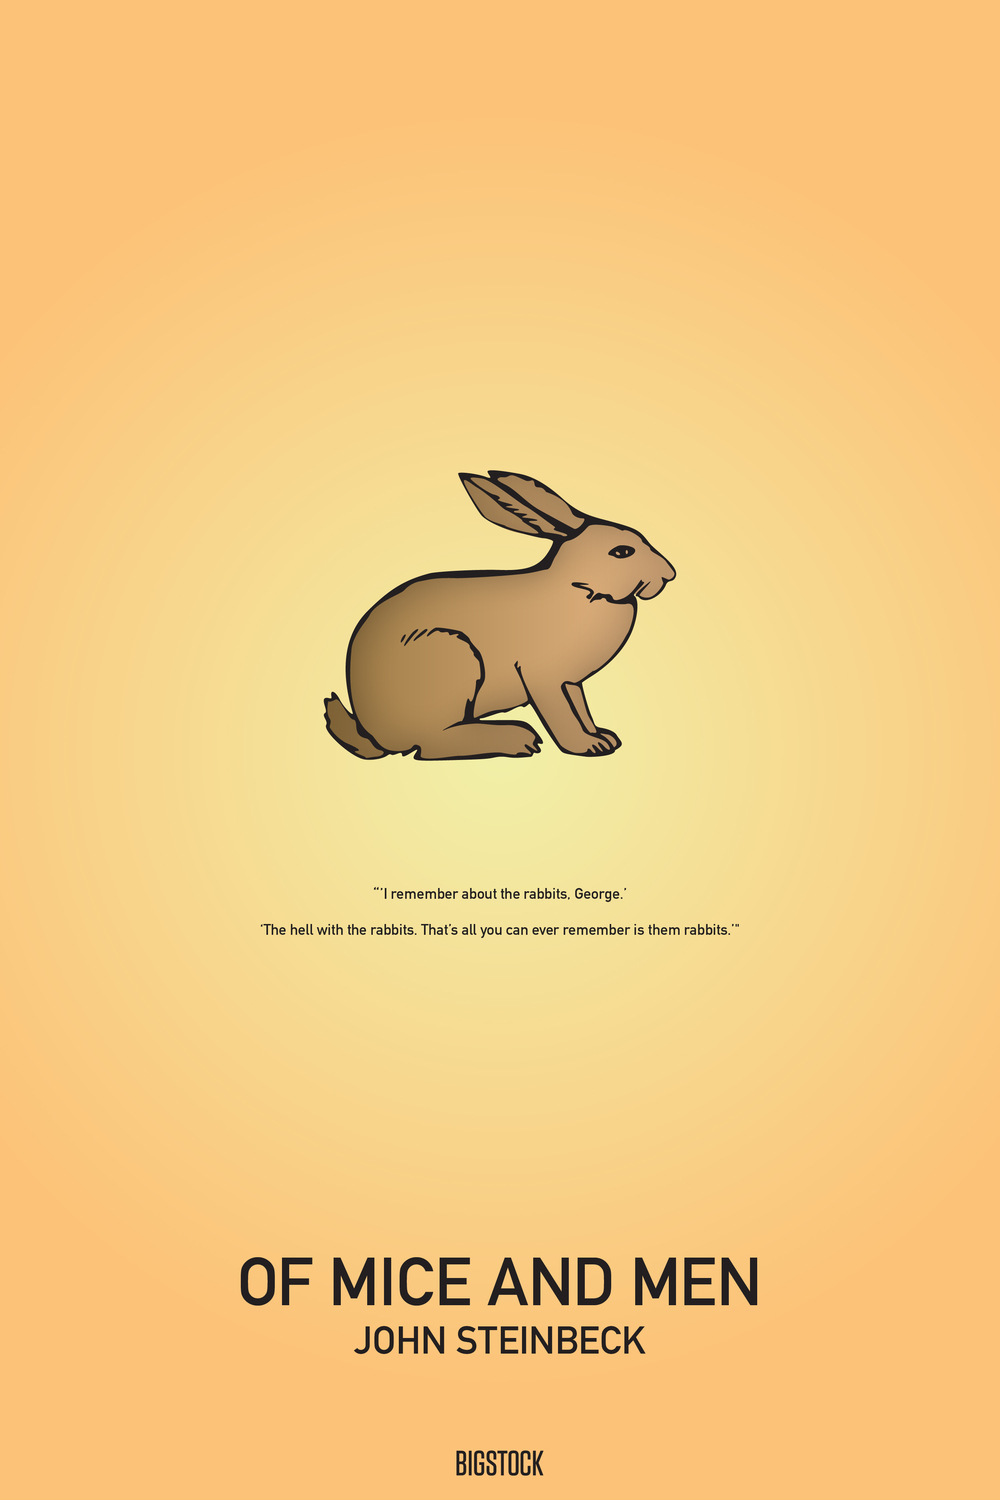 Summer Reading: Minimalist Book Covers, Of Mice and Men